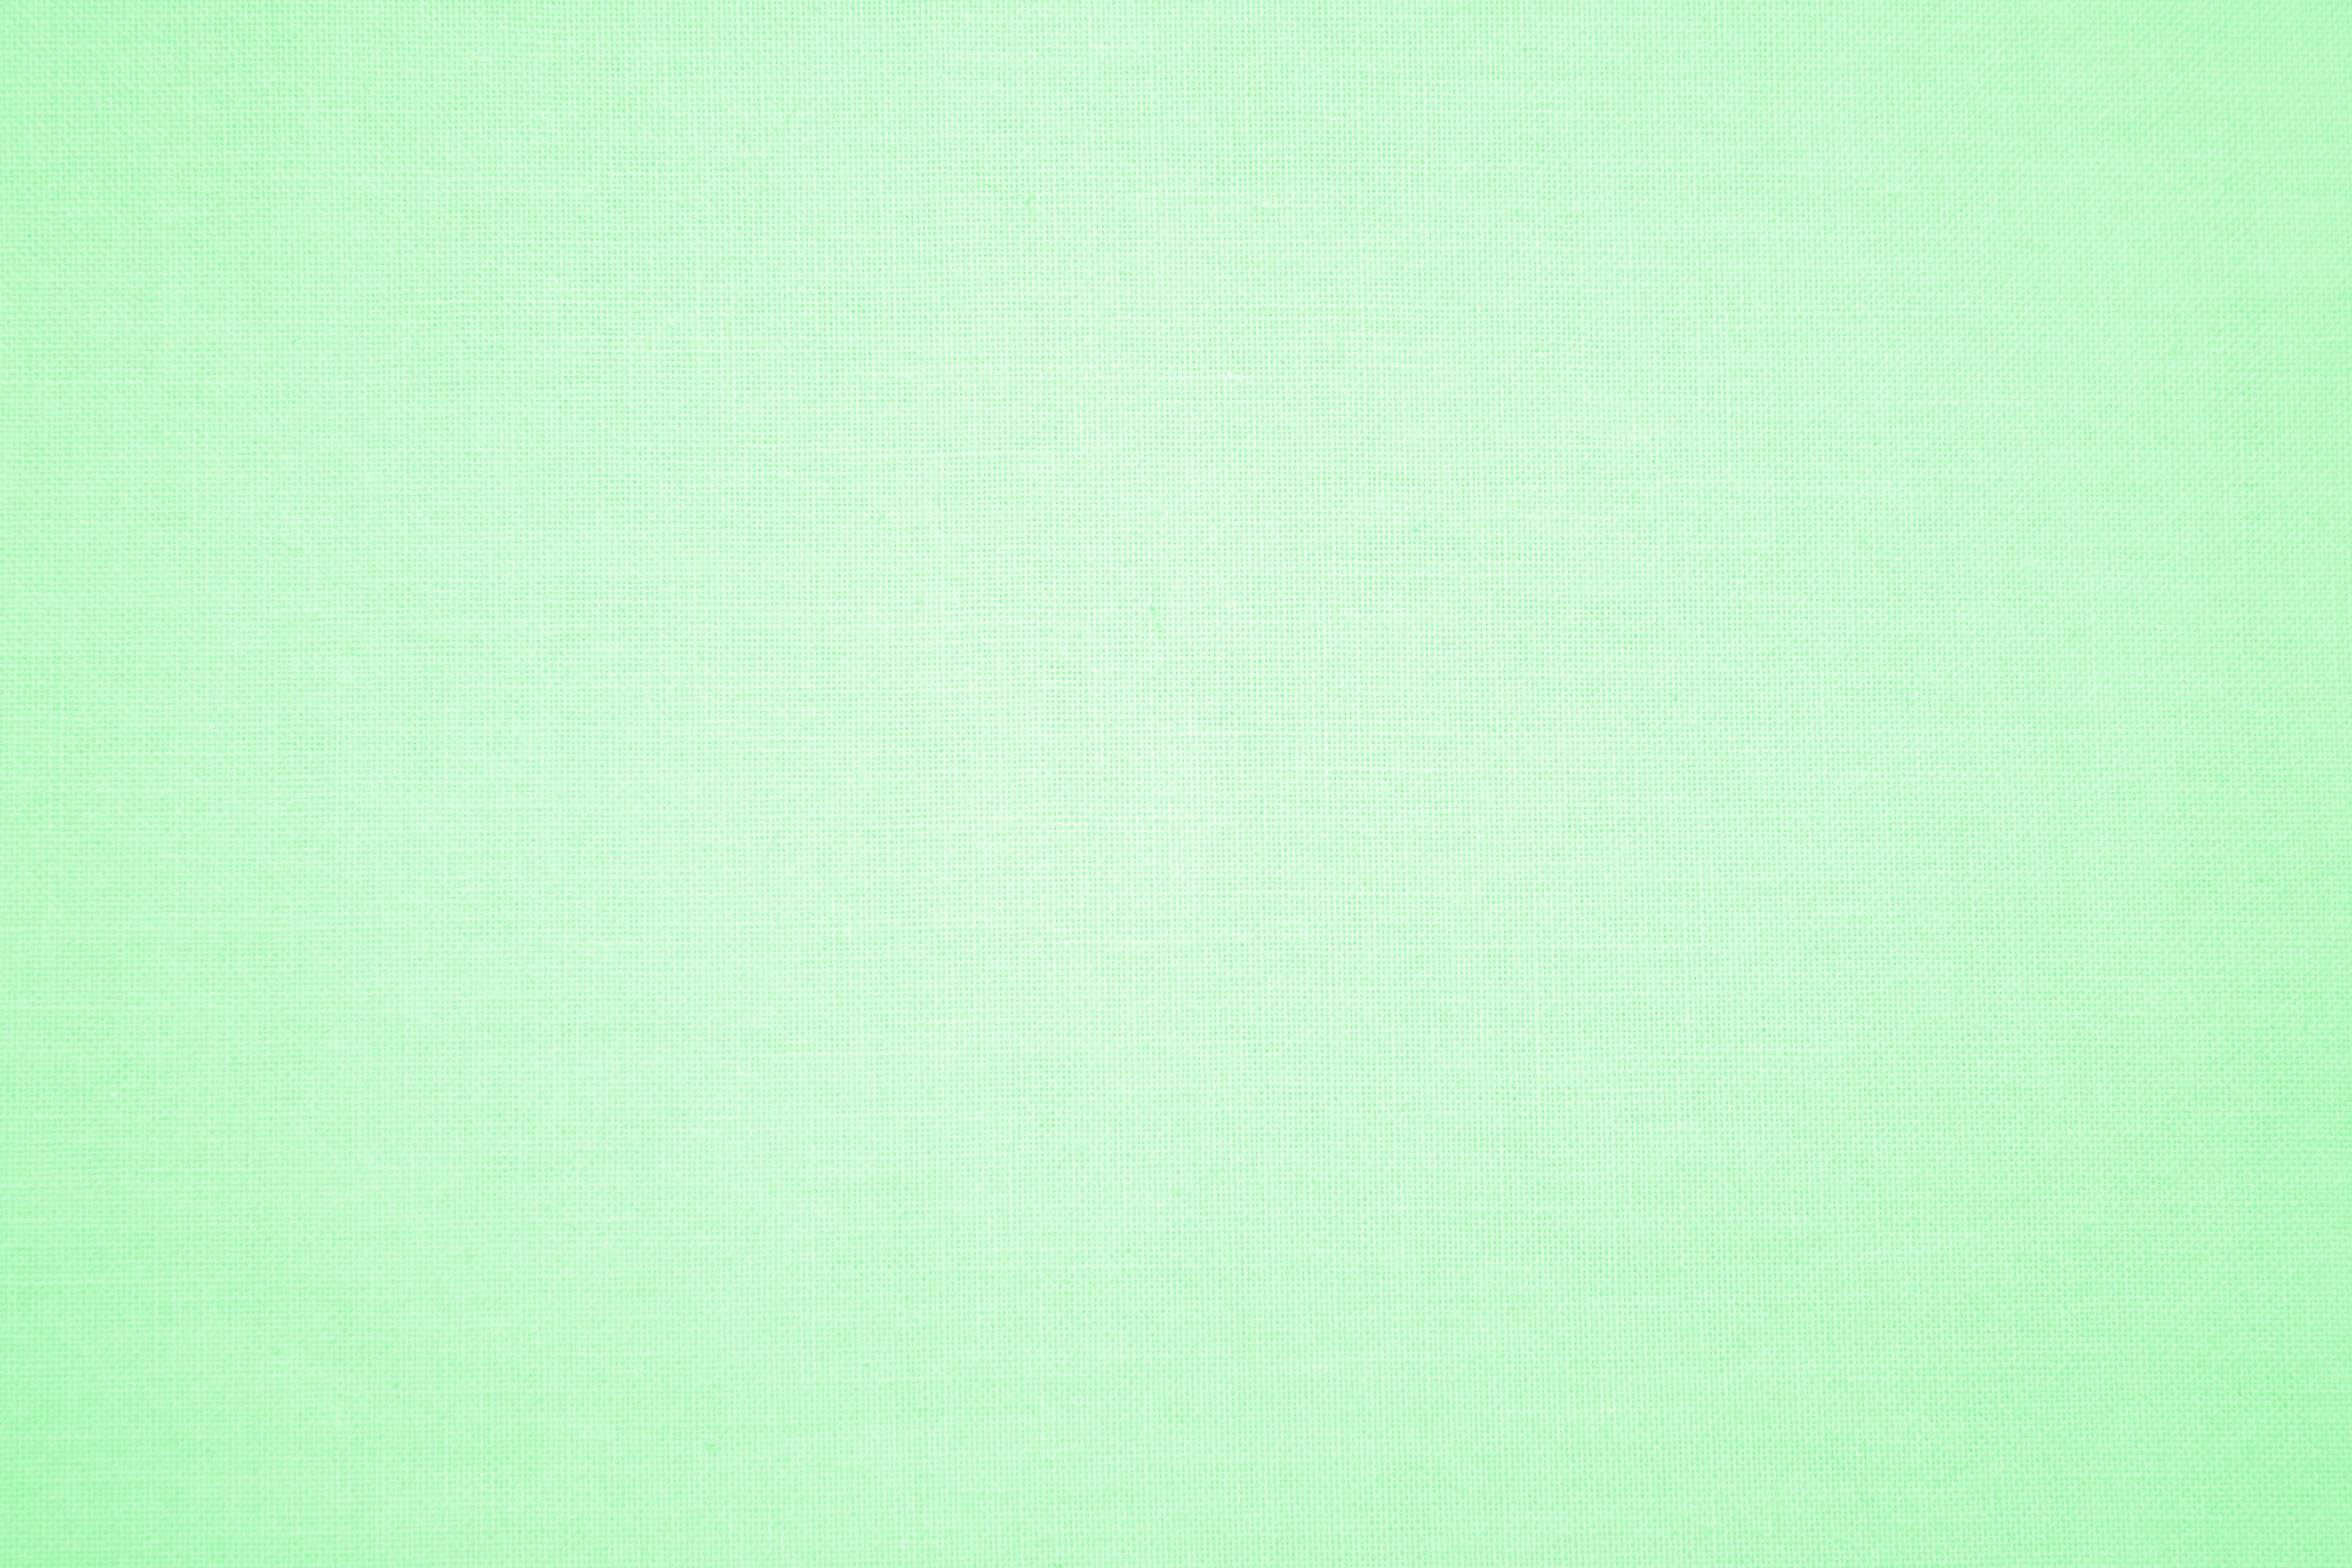 Pastel Green Canvas Fabric Texture Picture | Free Photograph ...